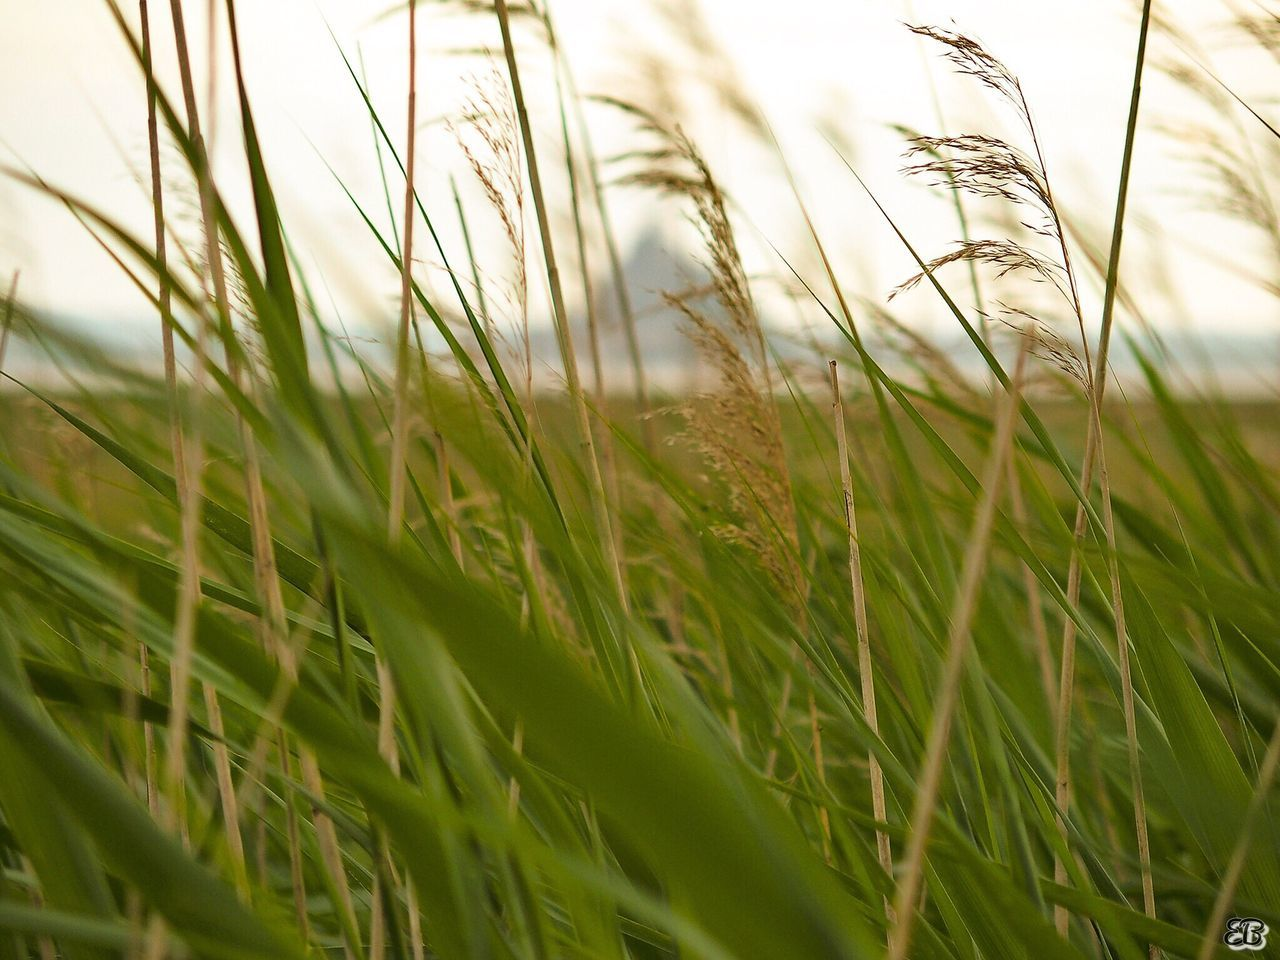 grass, growth, field, green color, selective focus, nature, wheat, cereal plant, crop, ear of wheat, agriculture, close-up, no people, plant, tranquility, day, outdoors, beauty in nature, rural scene, freshness, sky